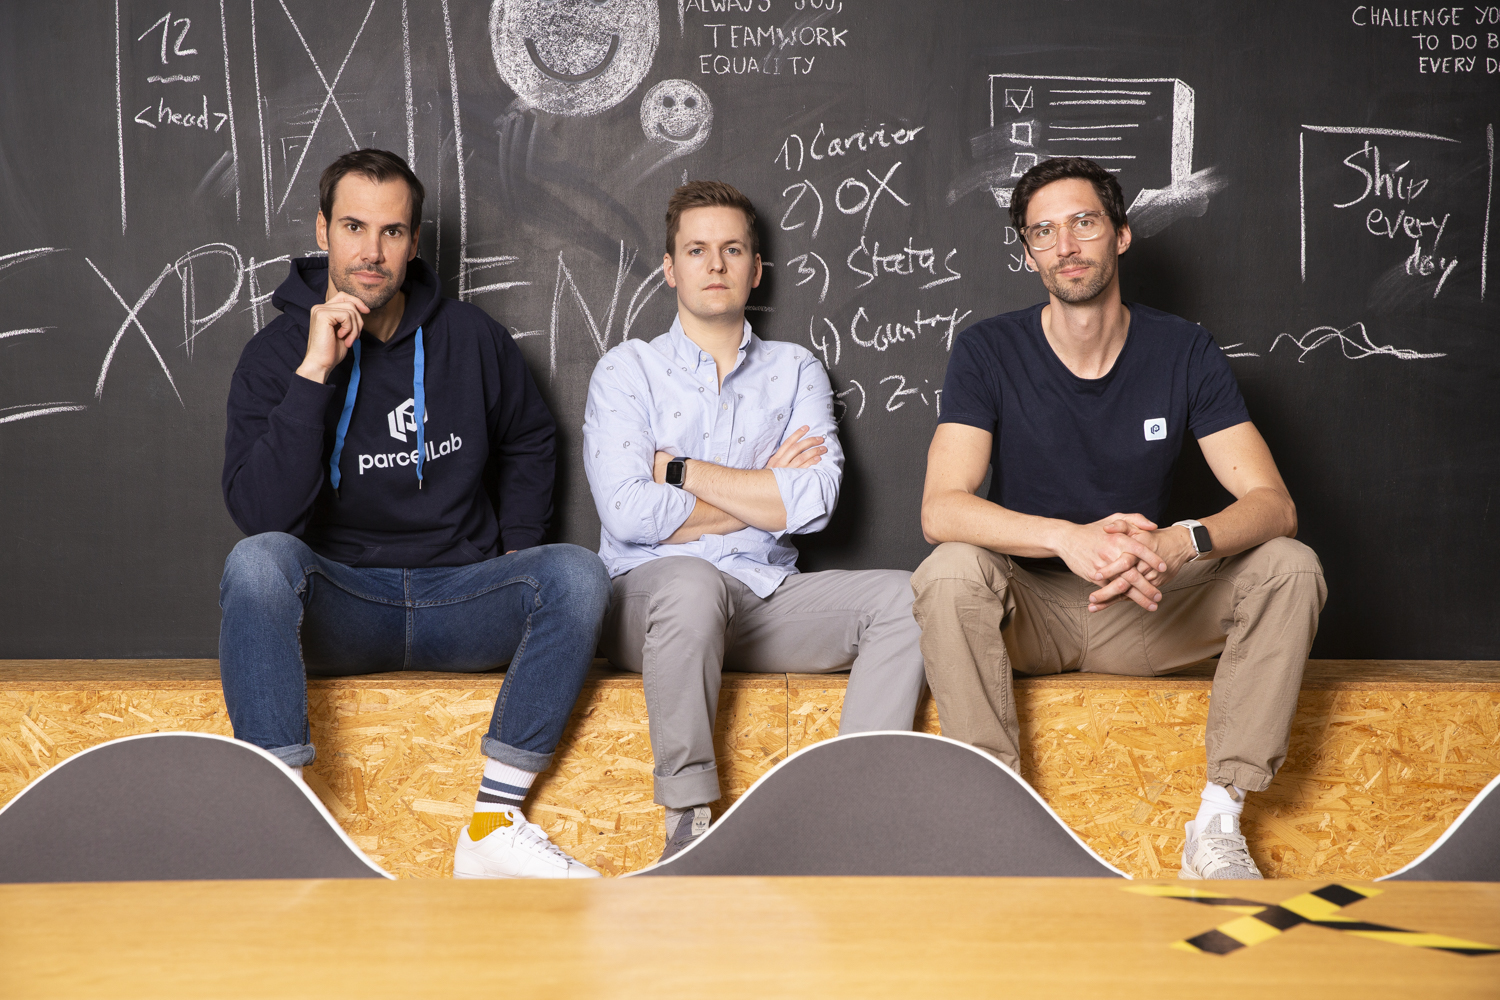 Founders parcellab